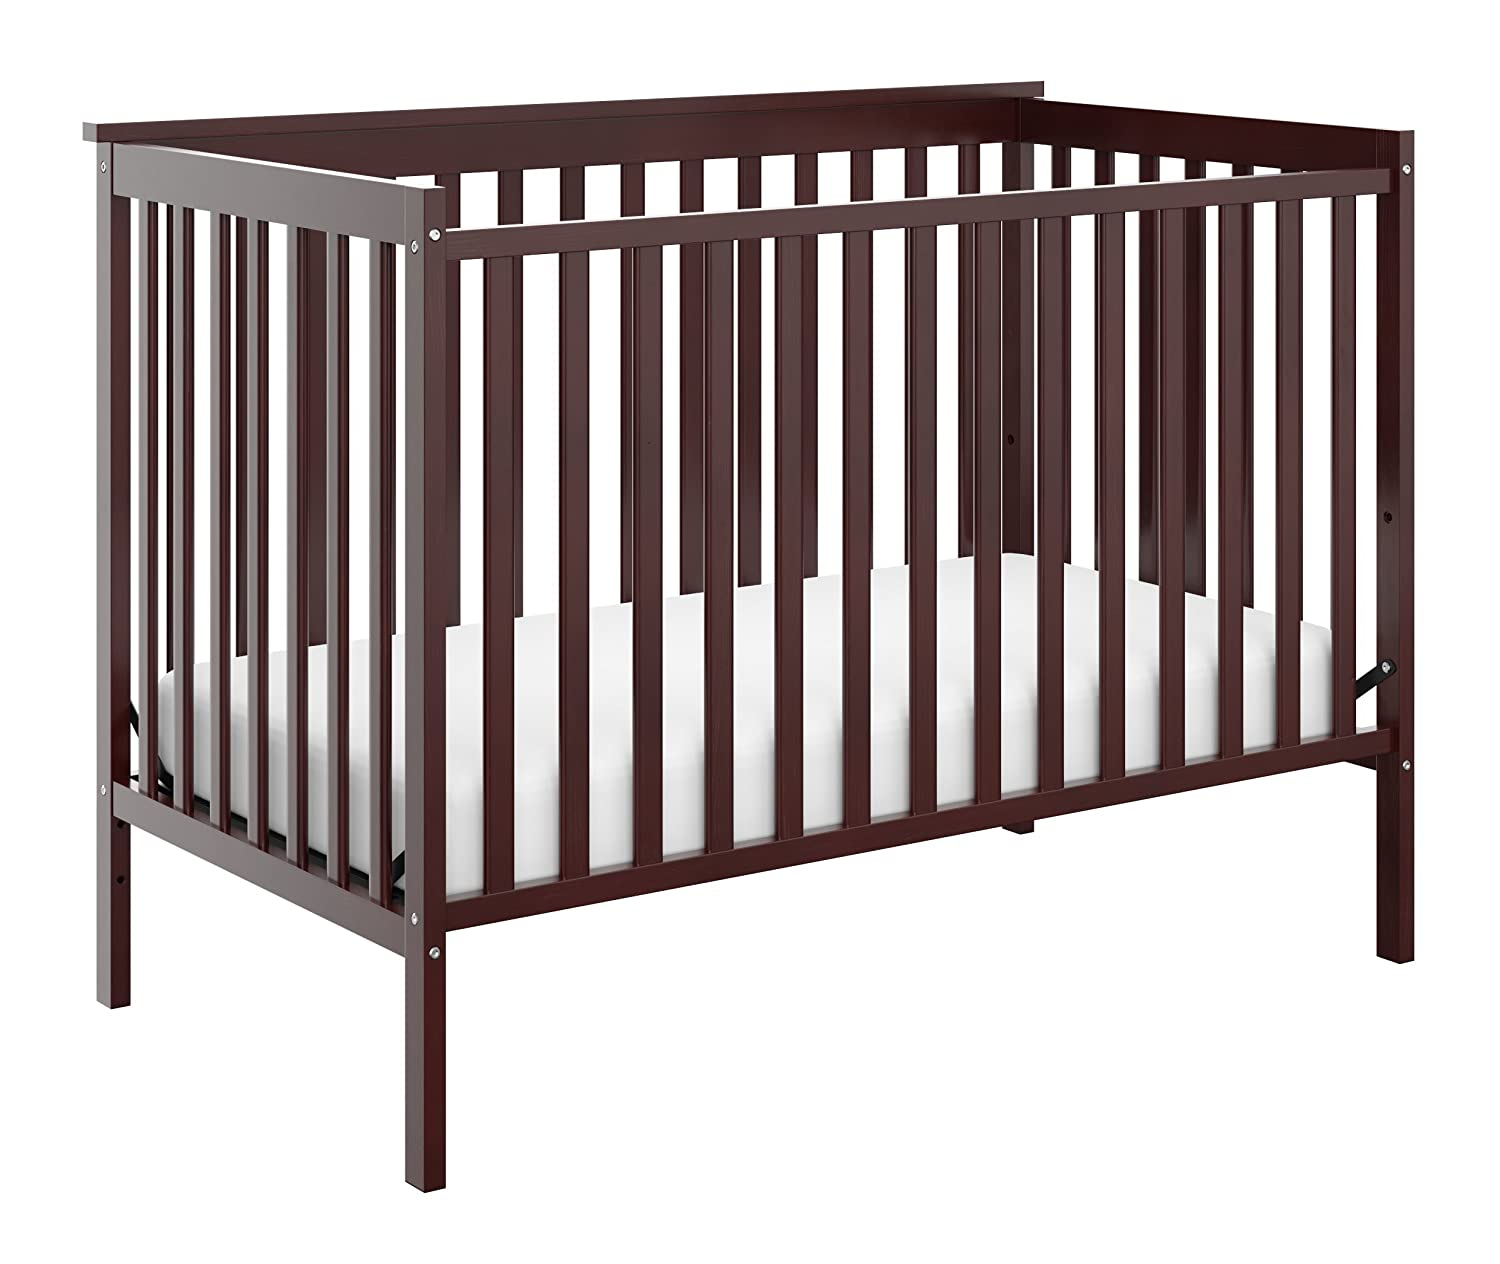 Baby bed hs code - Amazon Com Stork Craft Sheffield Fixed Side Convertible Crib Espresso Baby